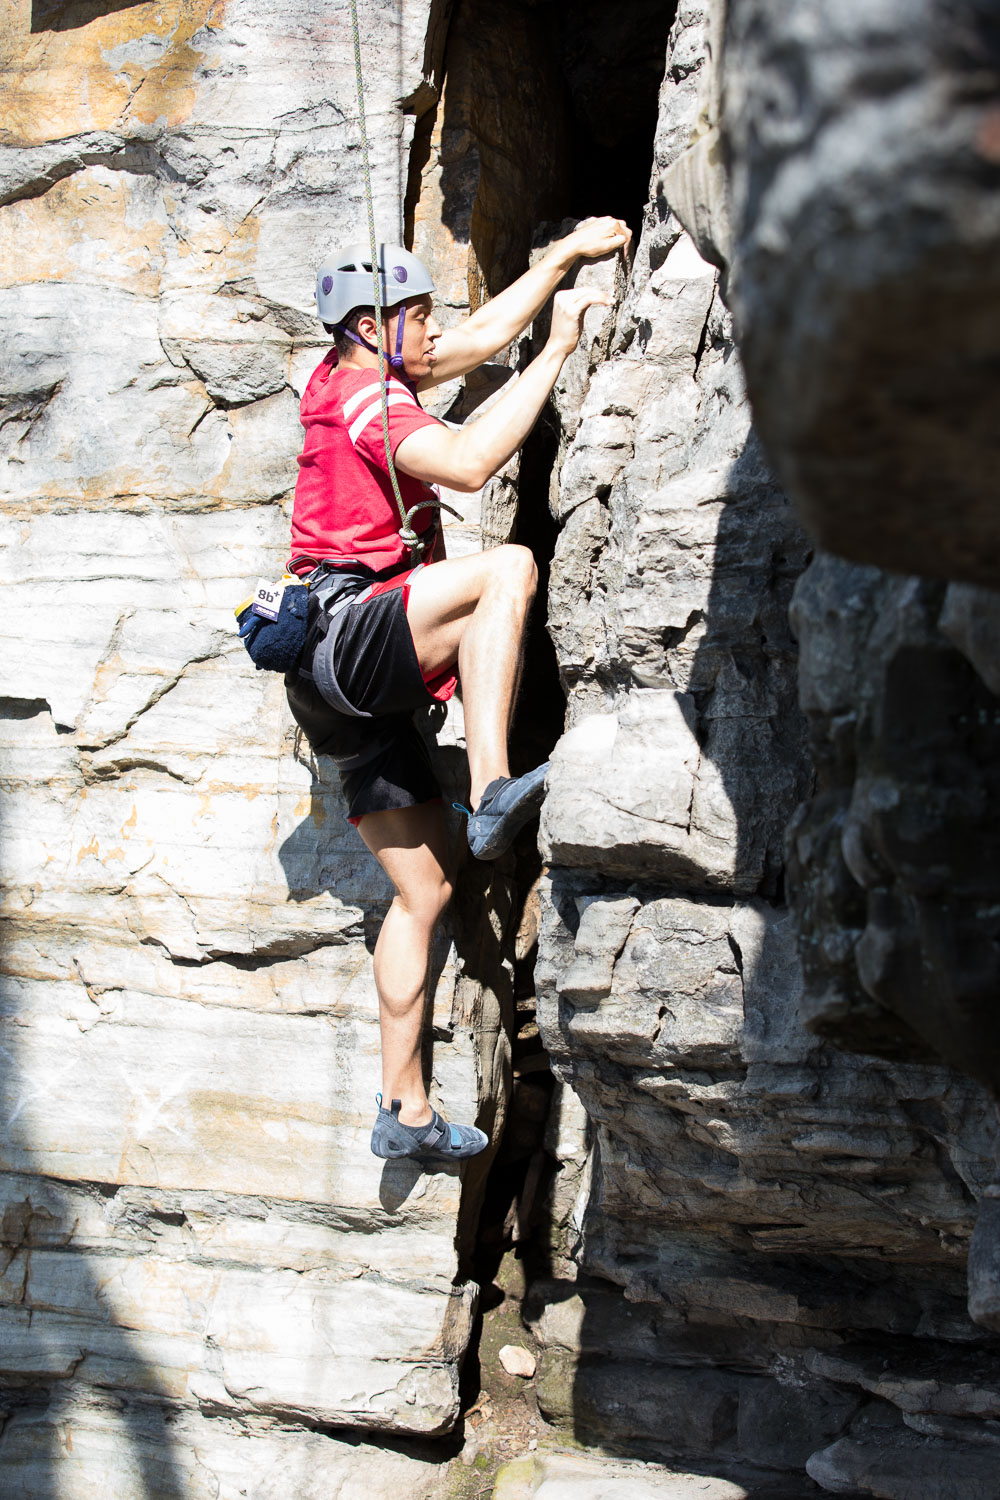 Christian climbing at Pilot Mountain